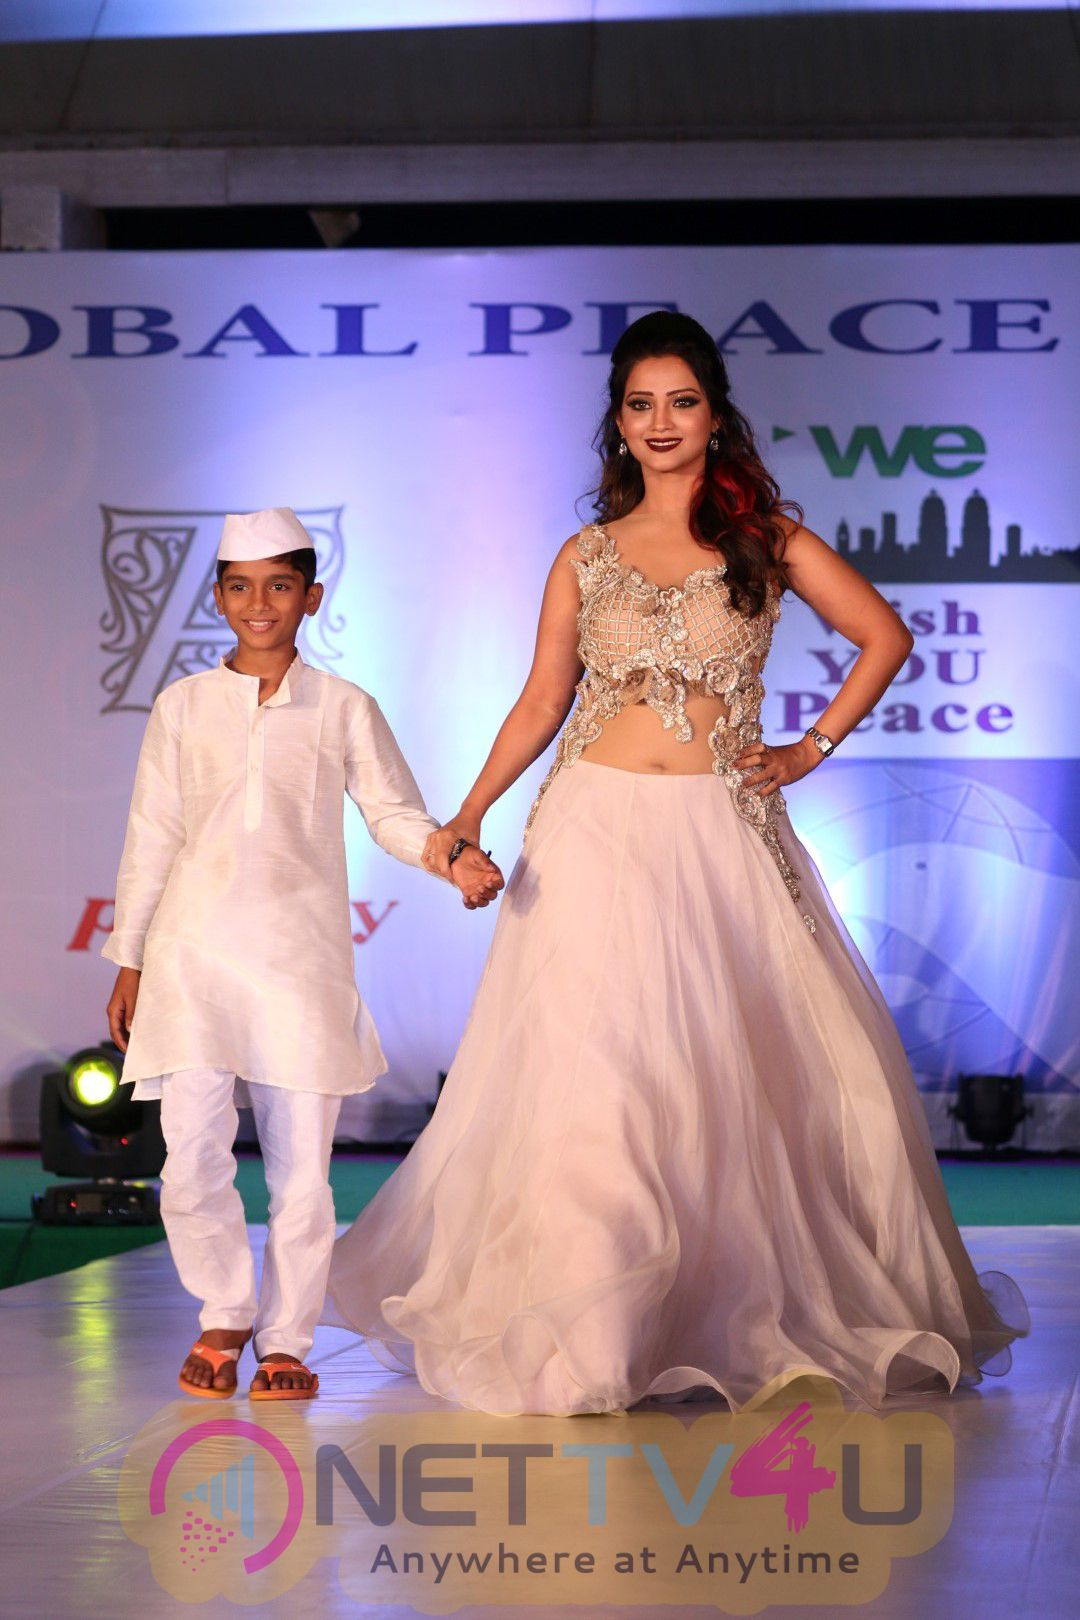 26/11 Global Peace Initiative Peace Awards Excellent Stills